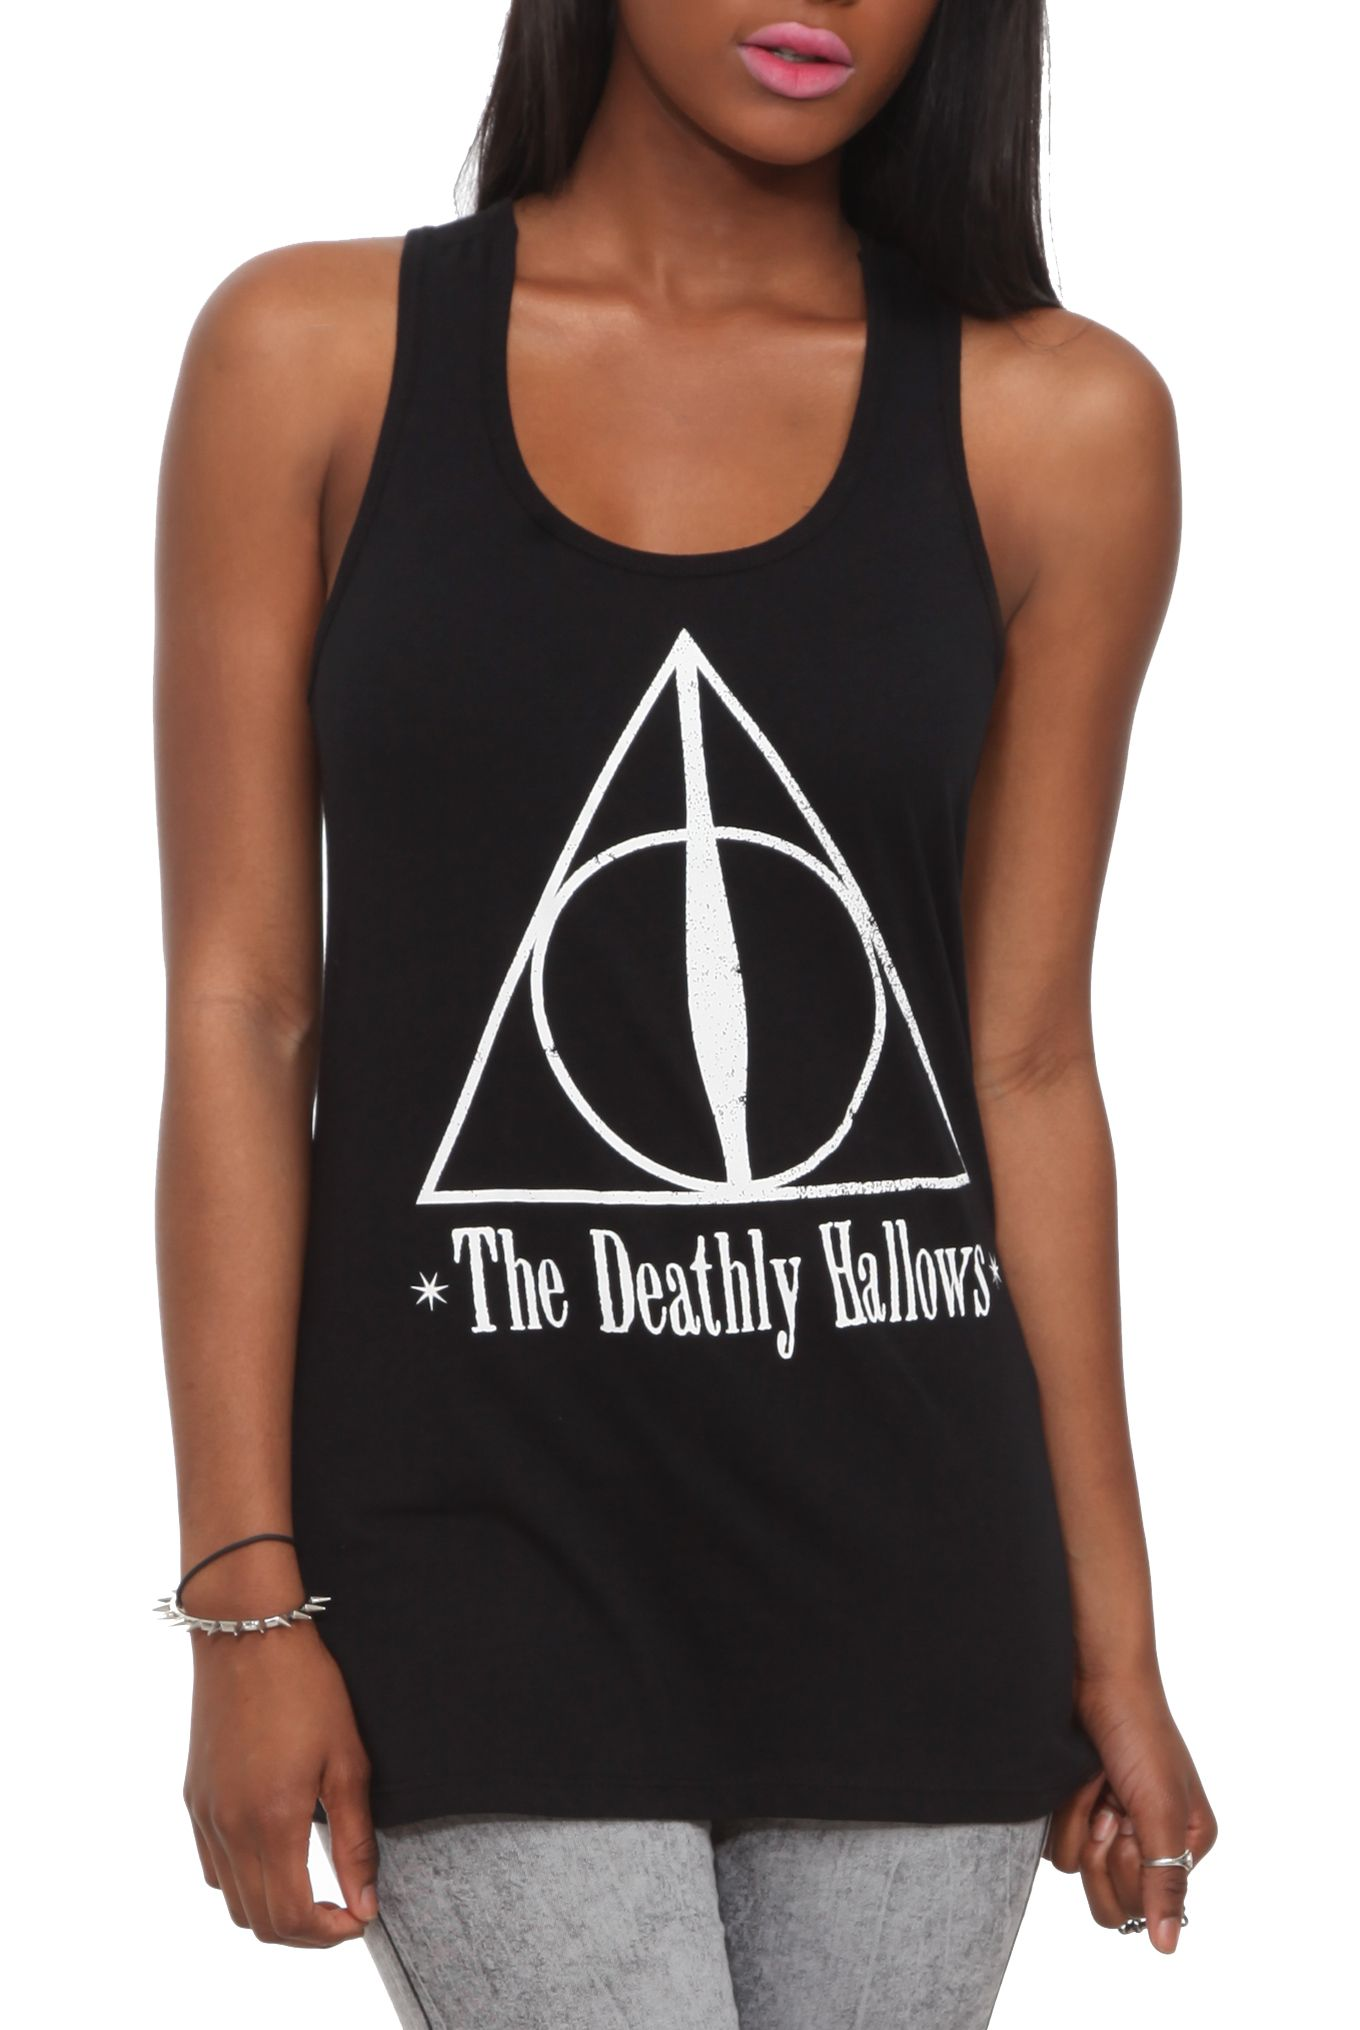 Harry potter and the deathly hallows symbol girls tank top hot harry potter and the deathly hallows symbol girls tank top biocorpaavc Images